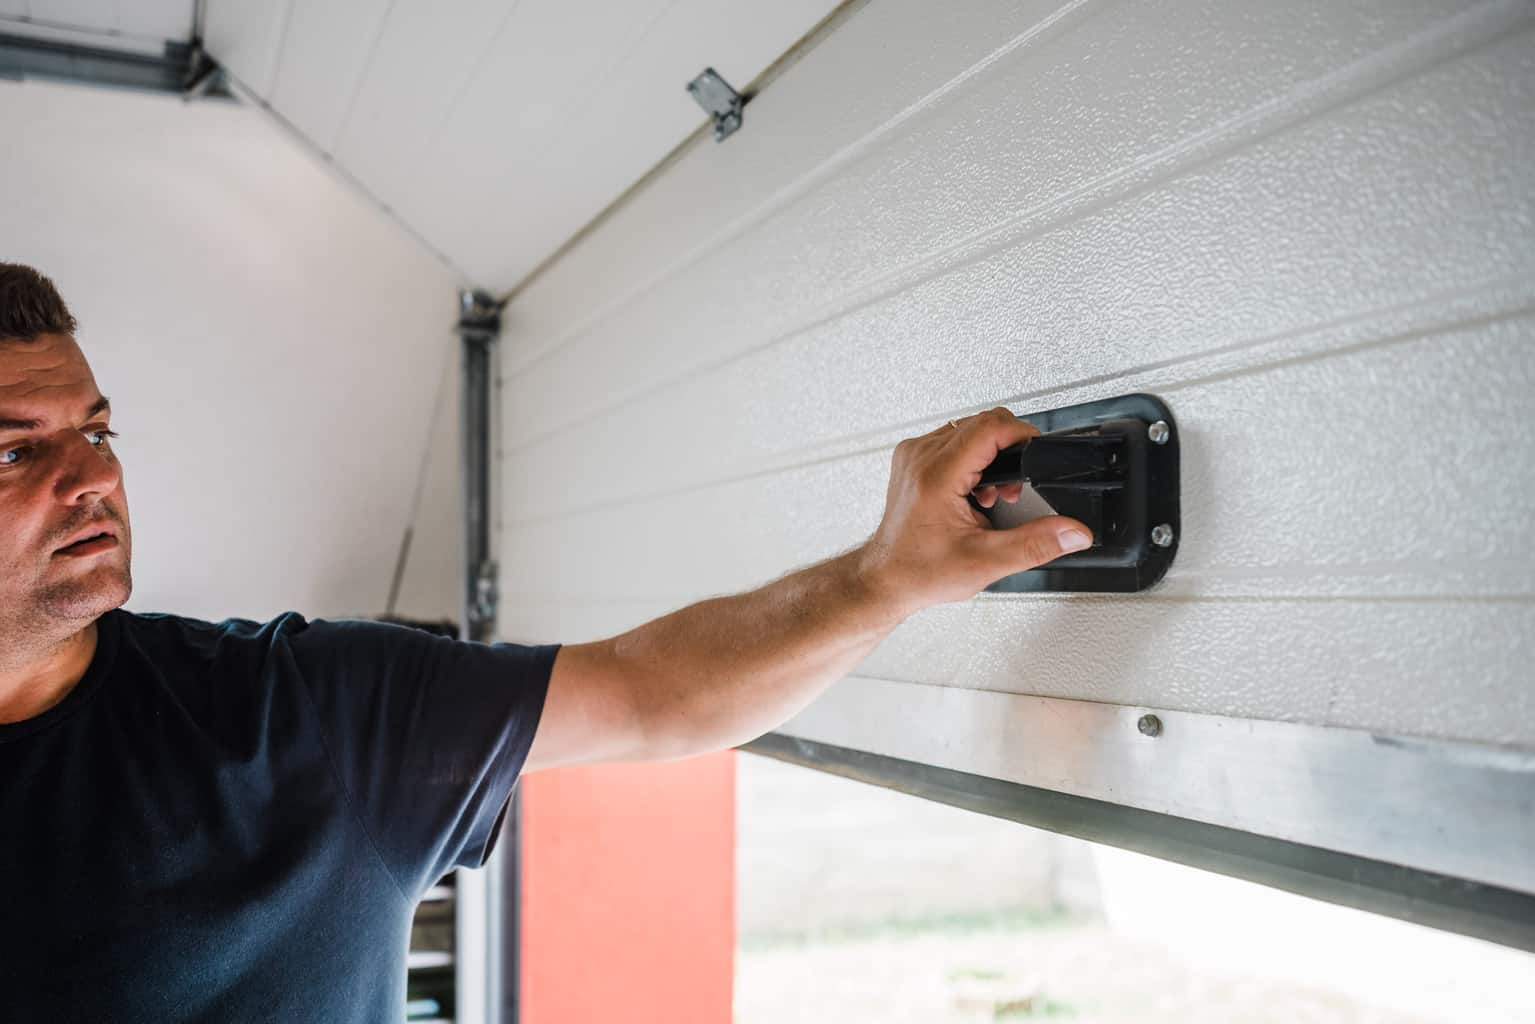 How To Open Garage Door Manually From Outside With Key how to open my garage door during power outage - all right